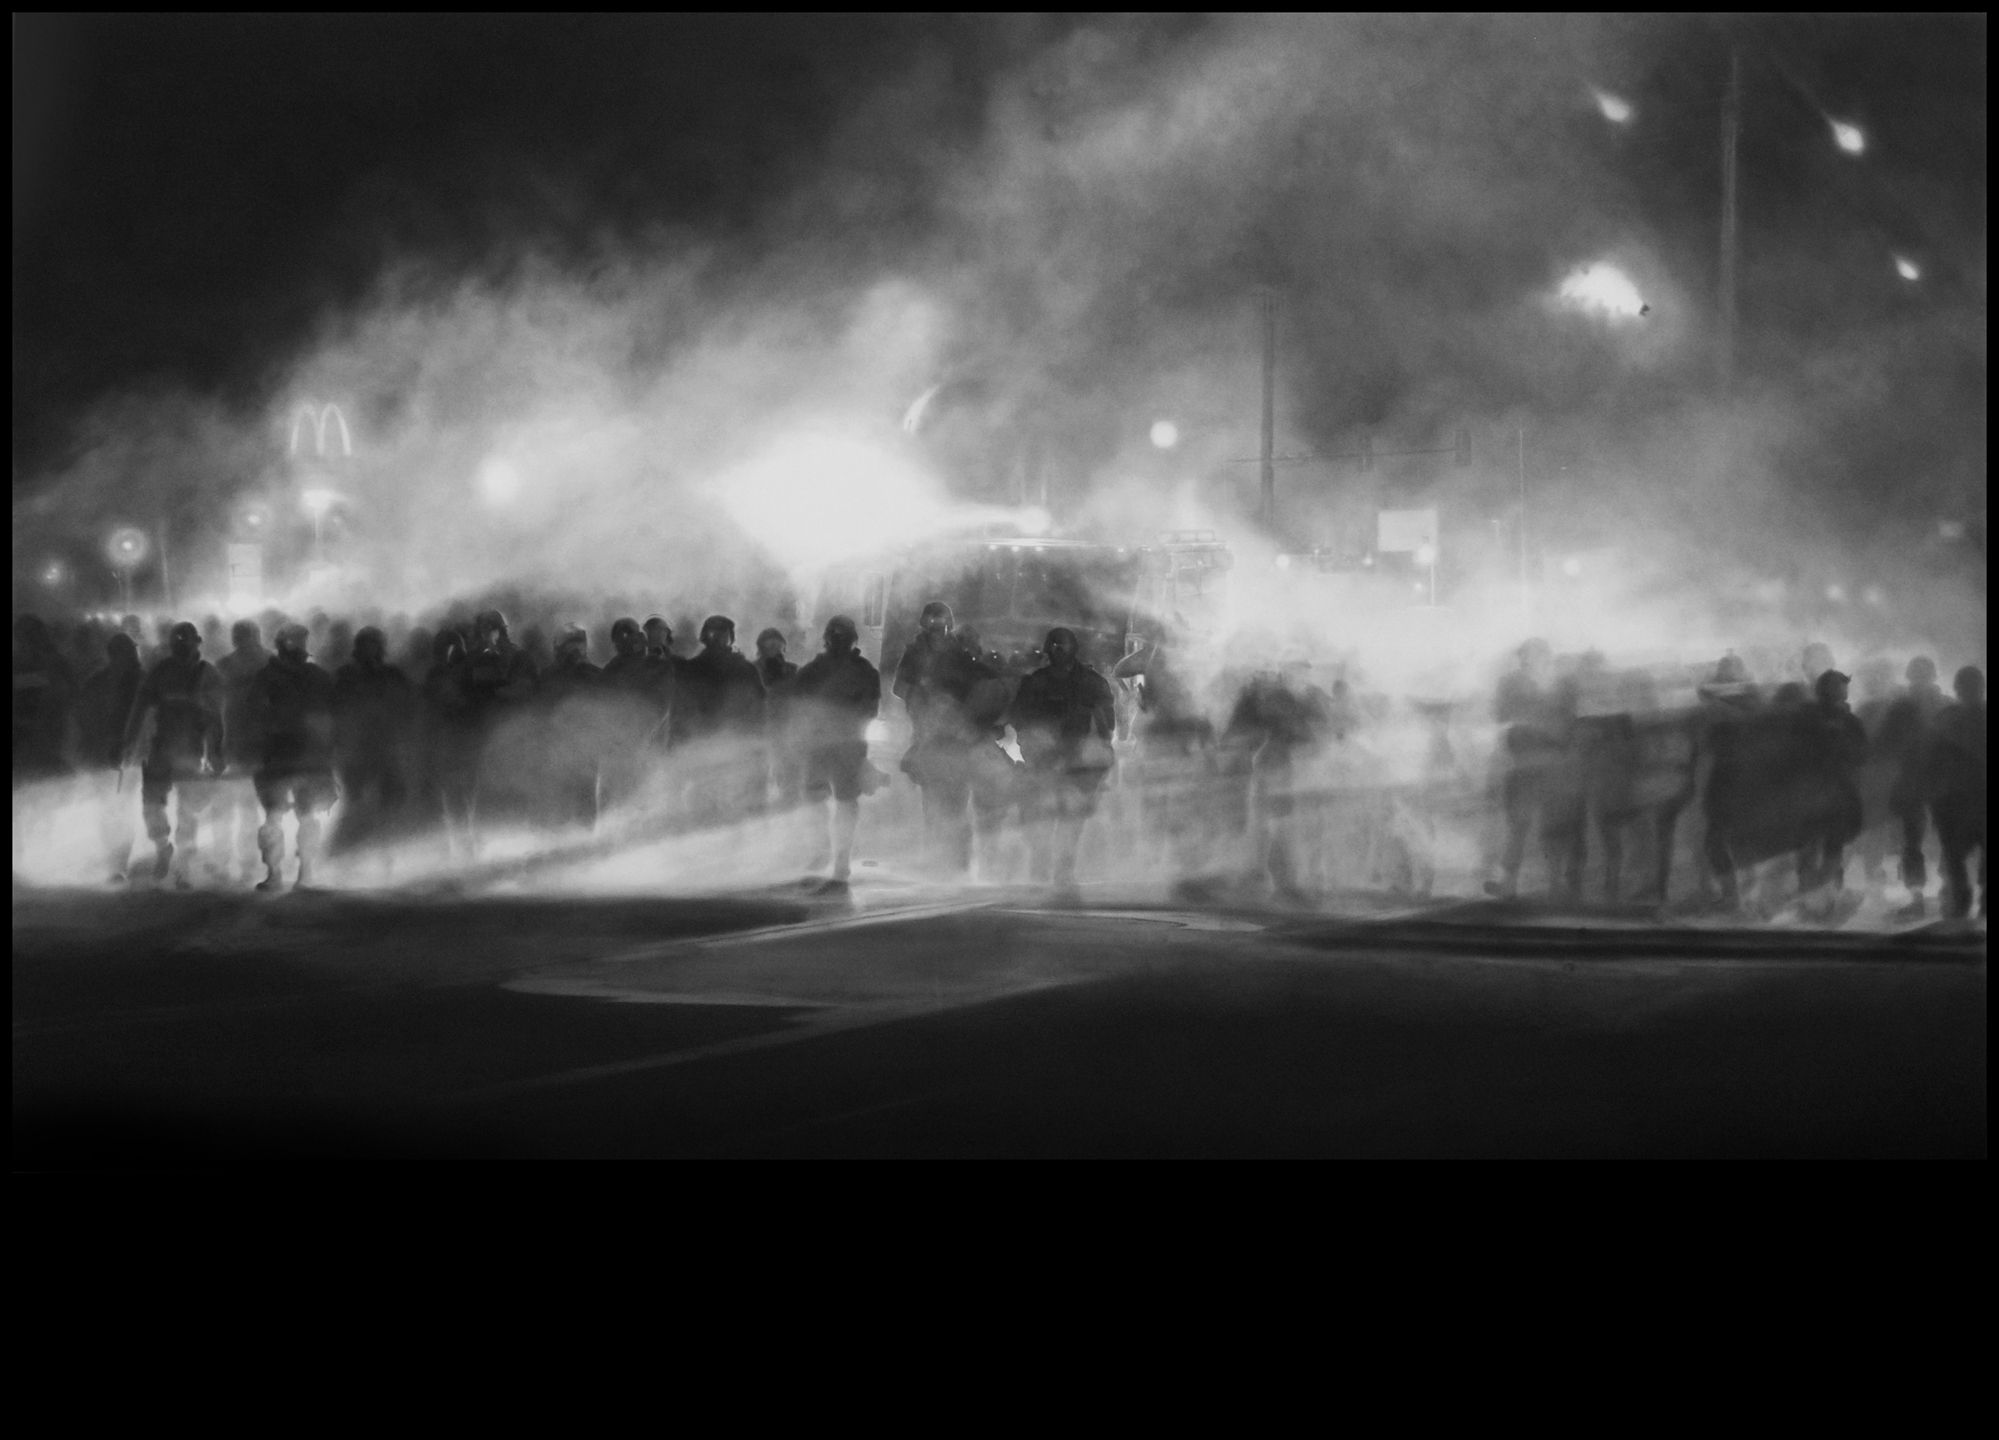 The Ferguson police, in a charcoal drawing by Robert Longo on display at Art Basel Miami Beach